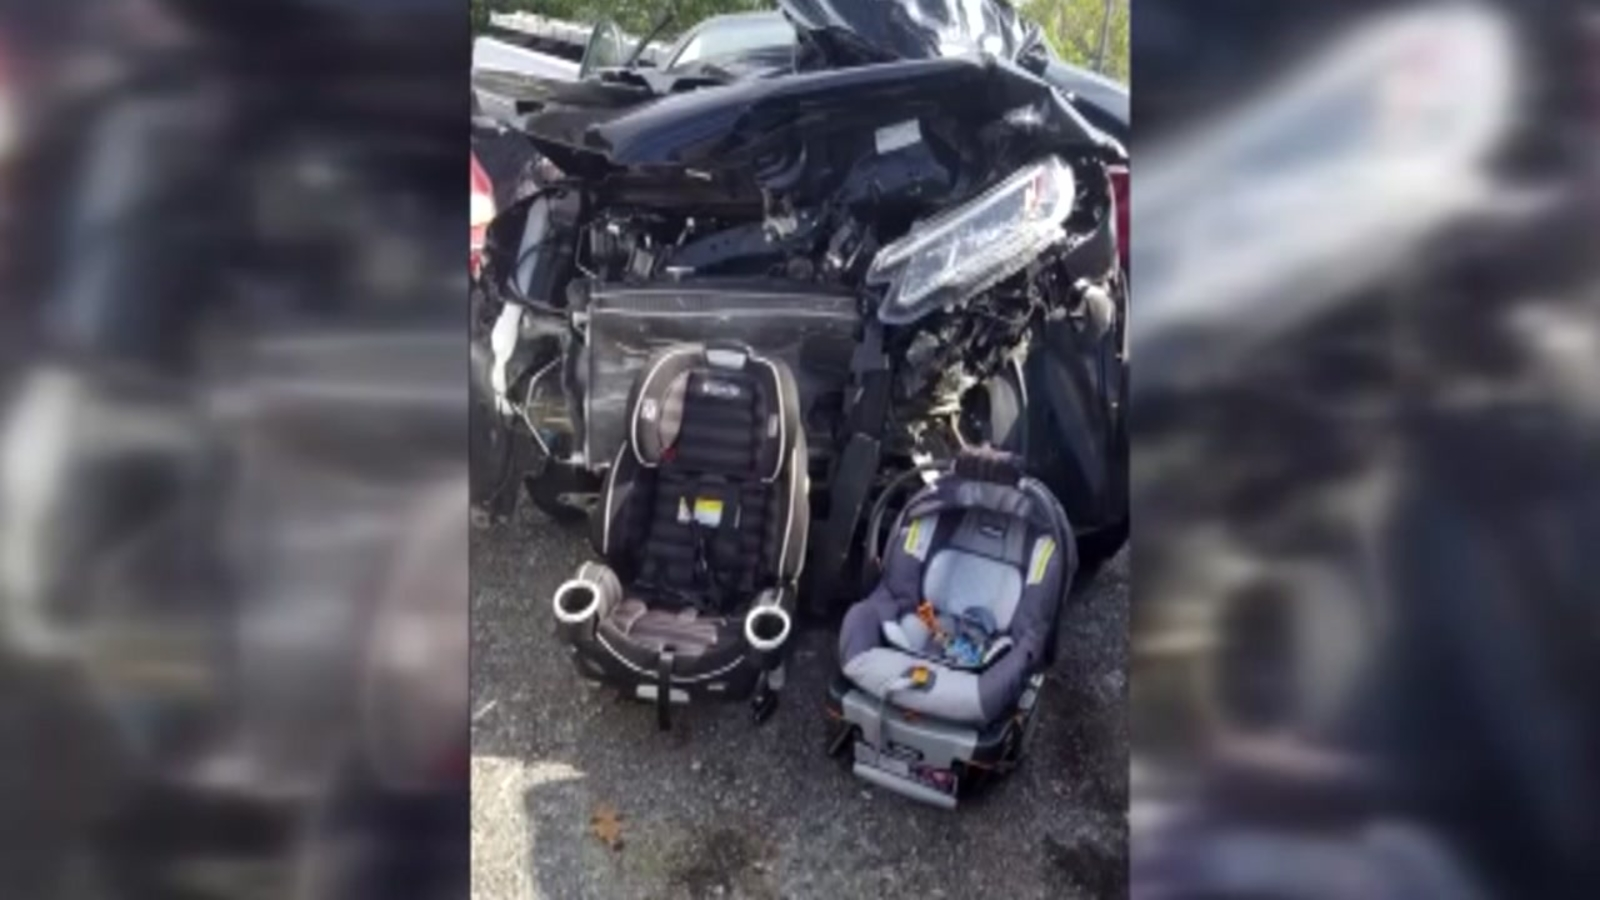 Mom S Image Of Horrific Car Accident Shows The Importance